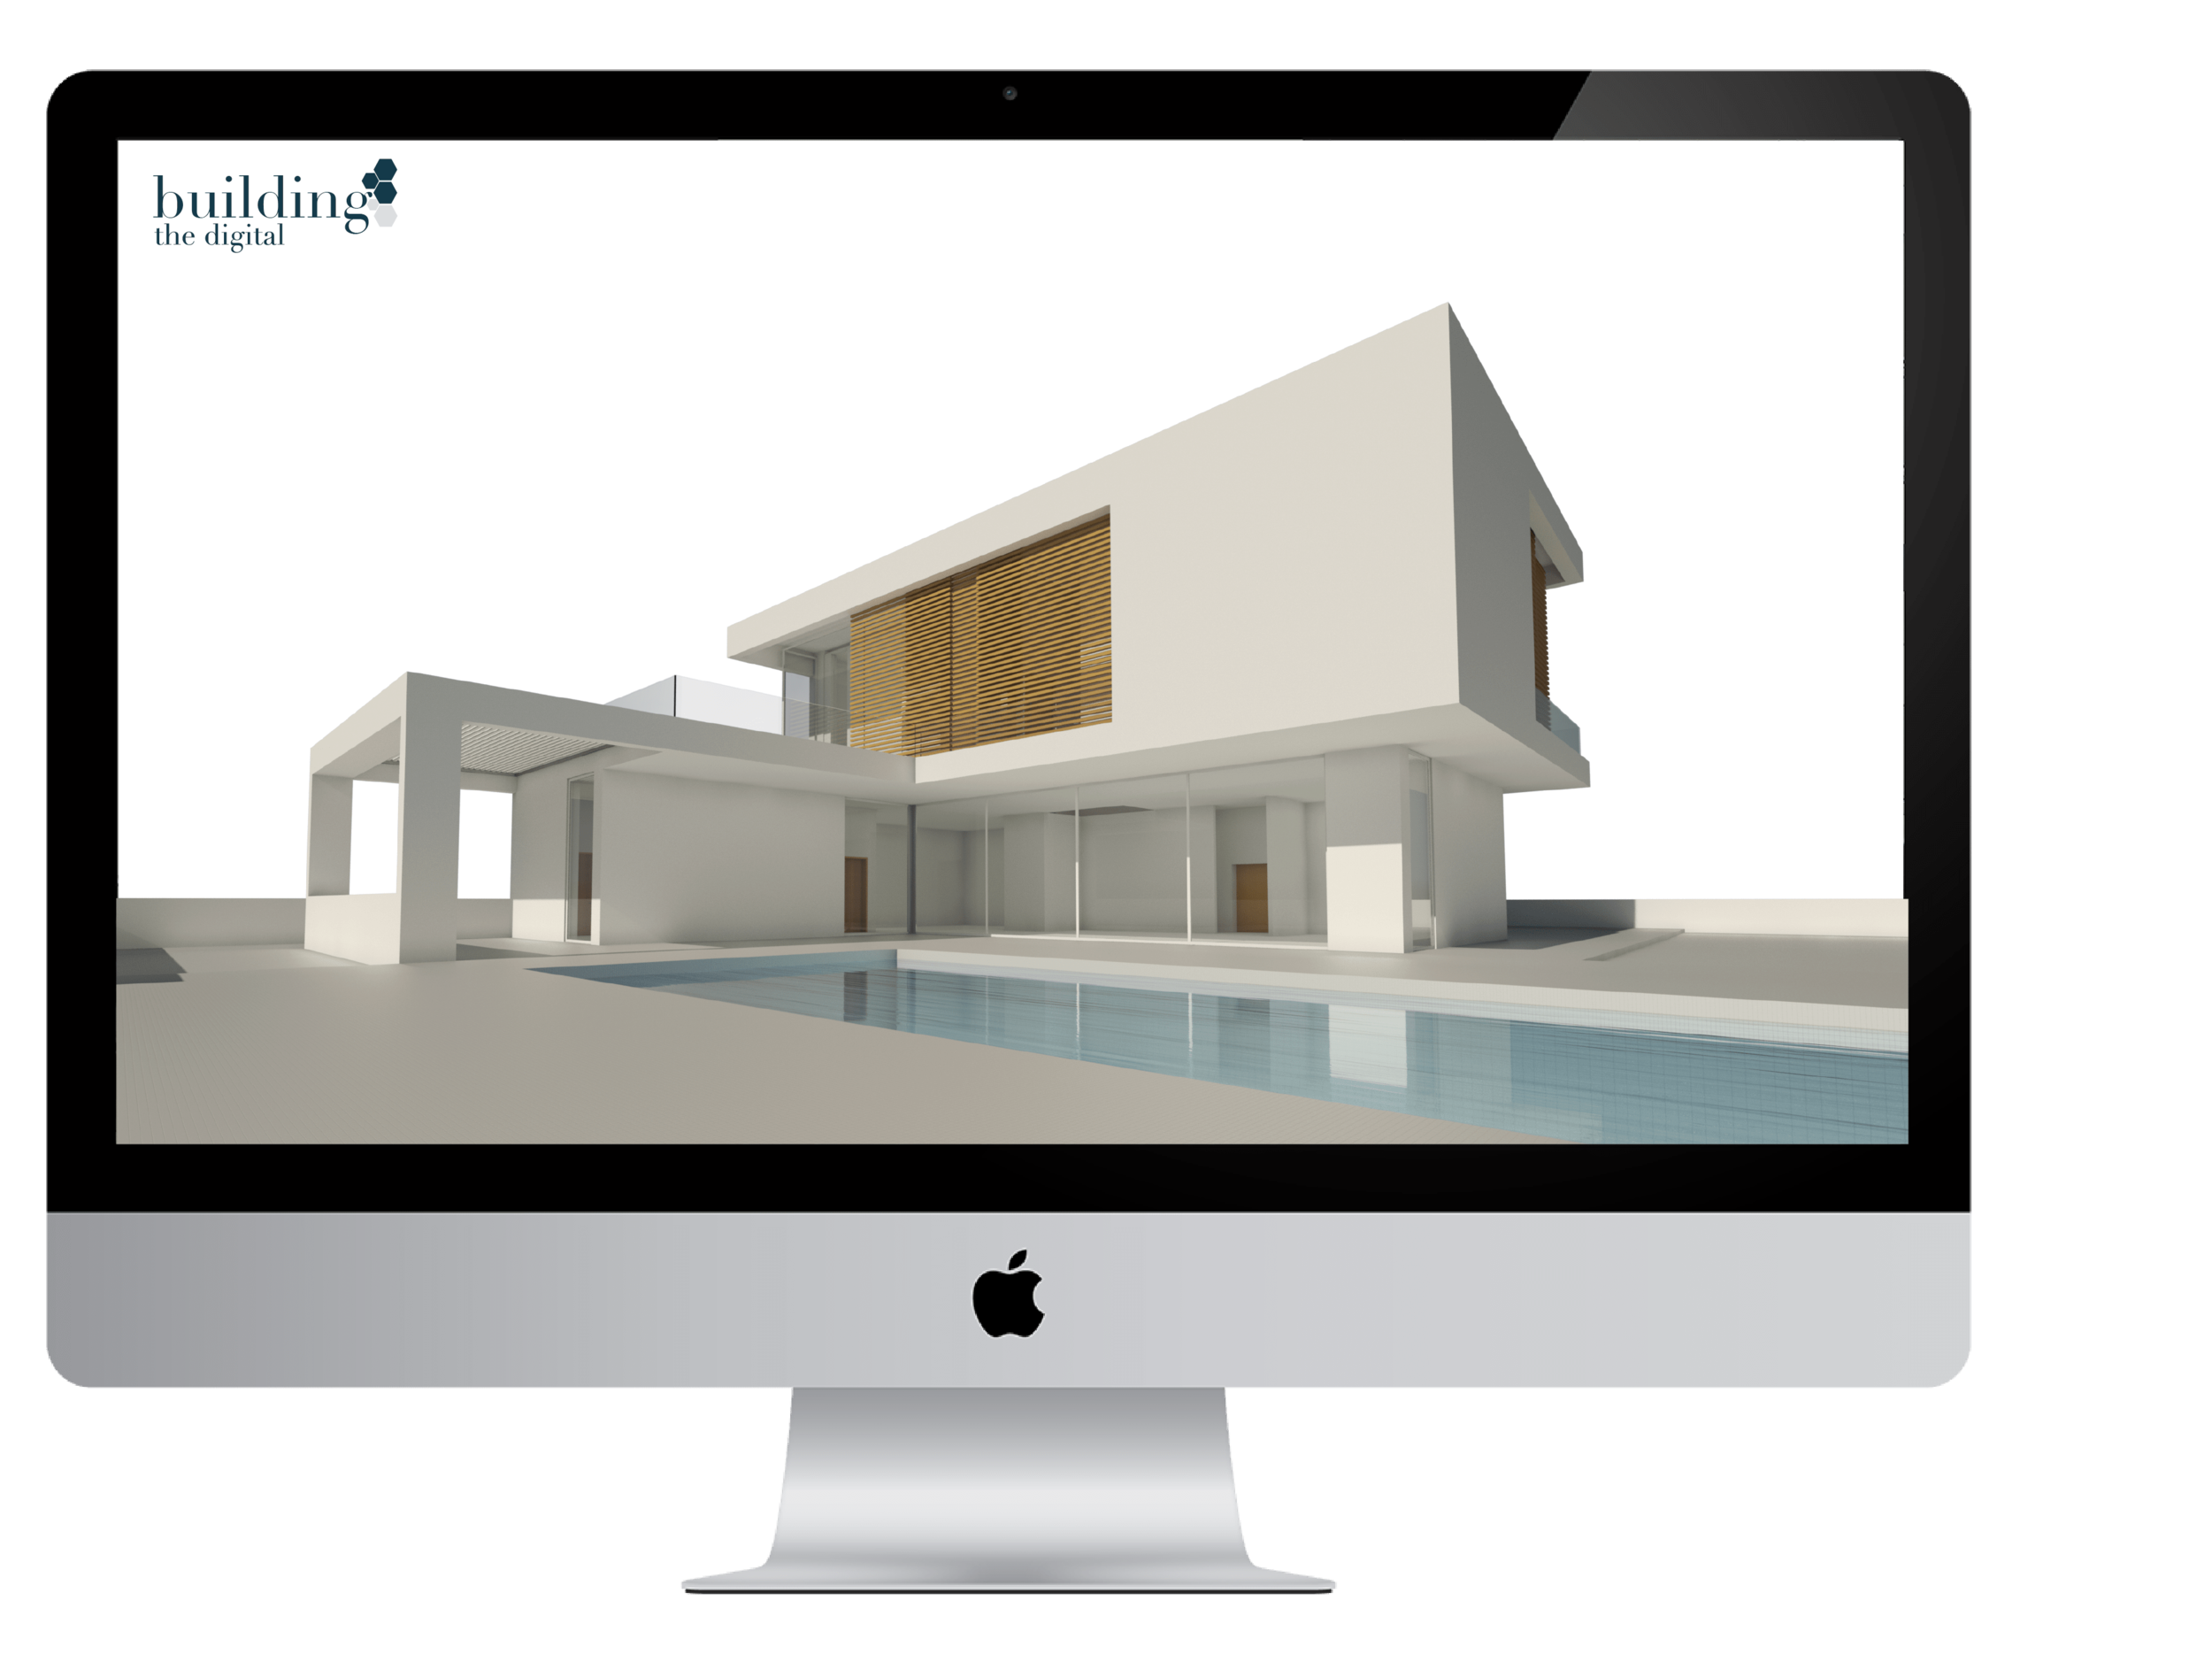 Revit course to get started with BIM - Nicosia, Cyprus